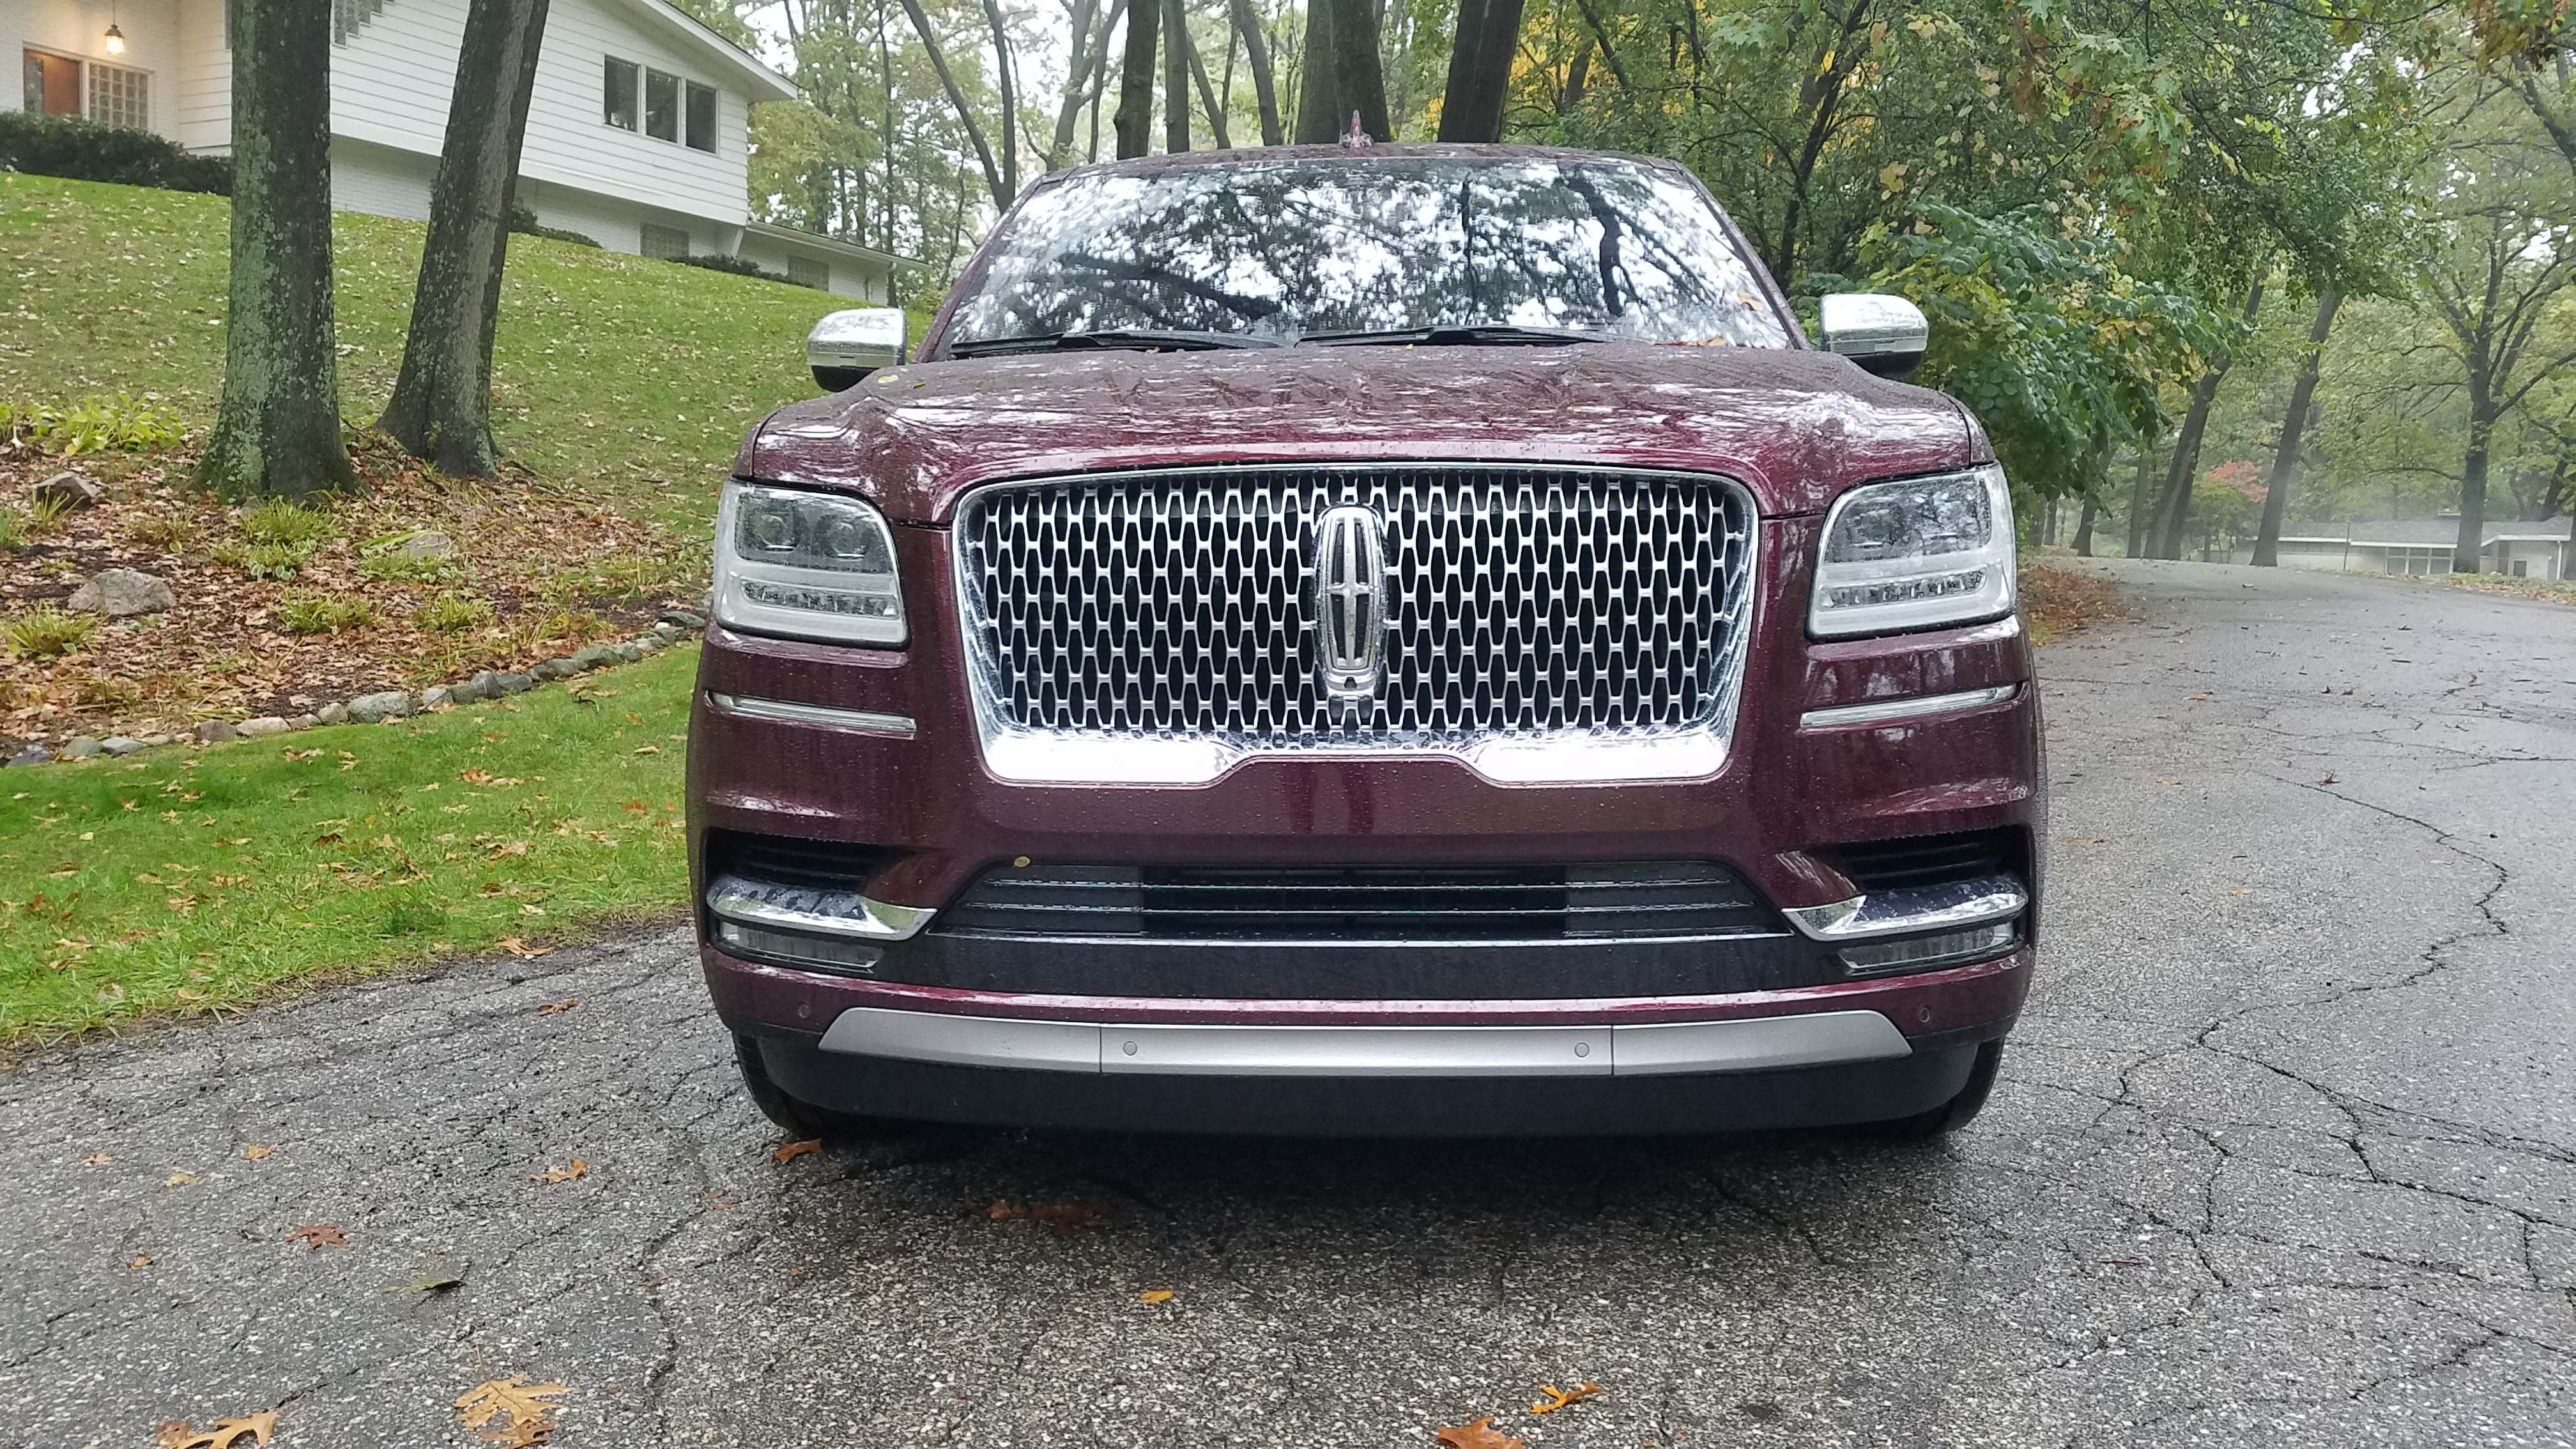 The Lincoln Navigator is the first Lincoln SUV to wear